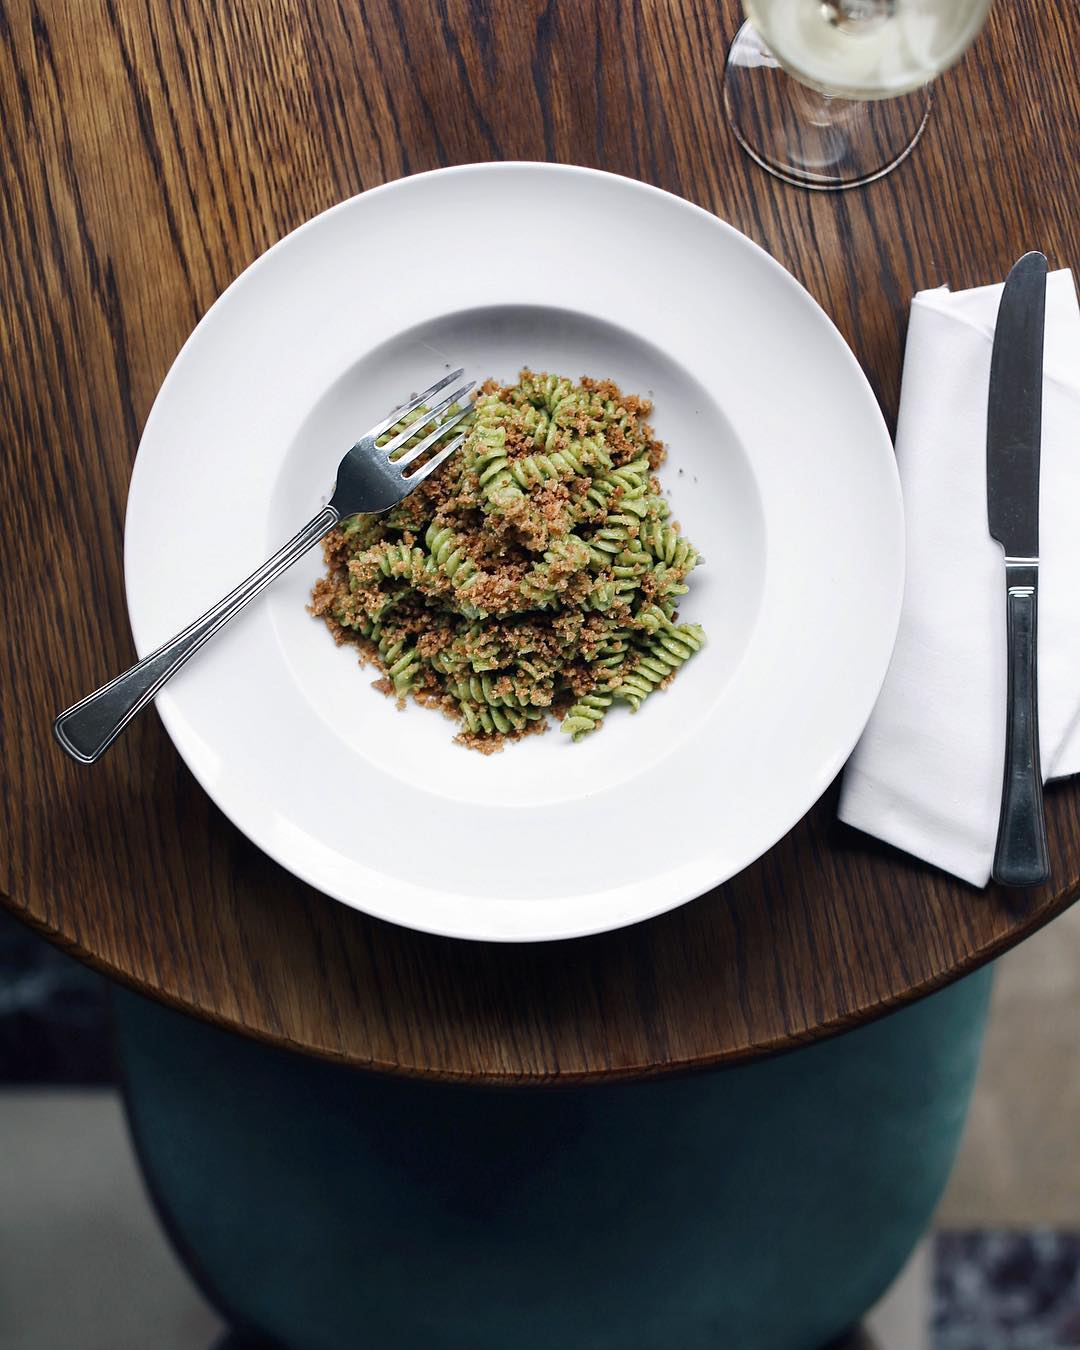 Massimo Bottura's Fusilli with Breadcrumb Pesto. Image courtesy of Cafe Monico's Instagram